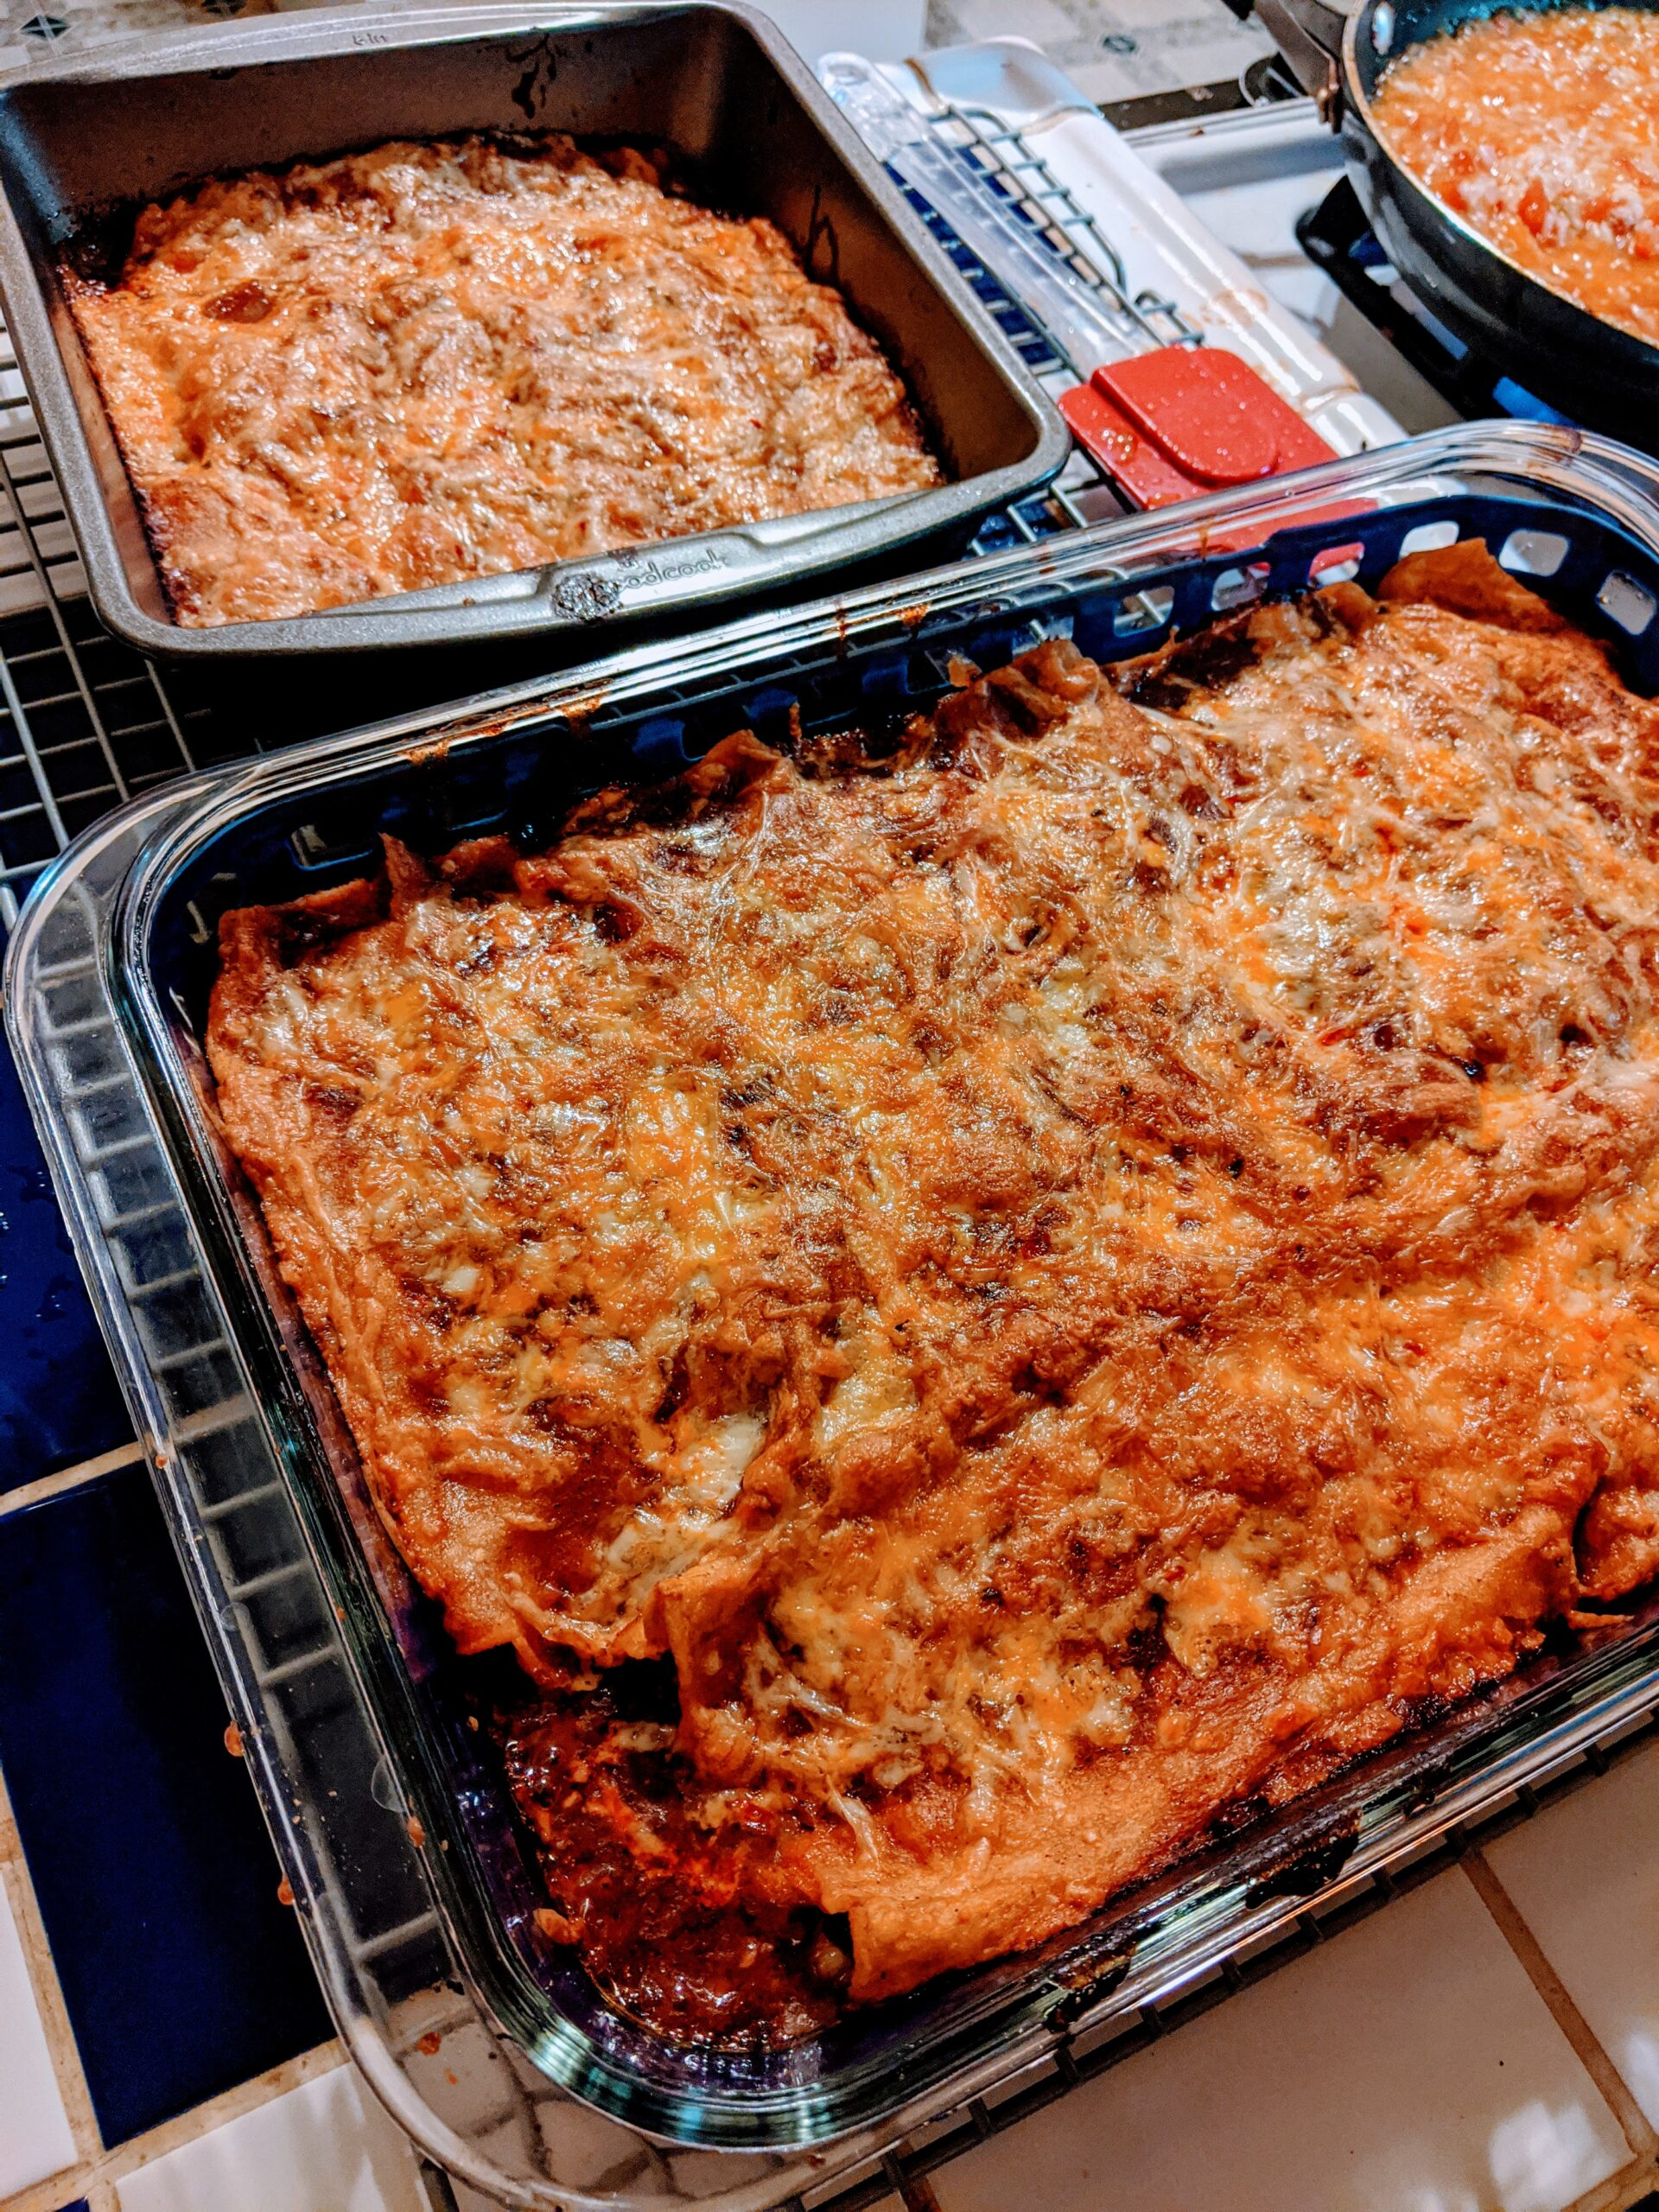 Homemade enchiladas, delivered to your door